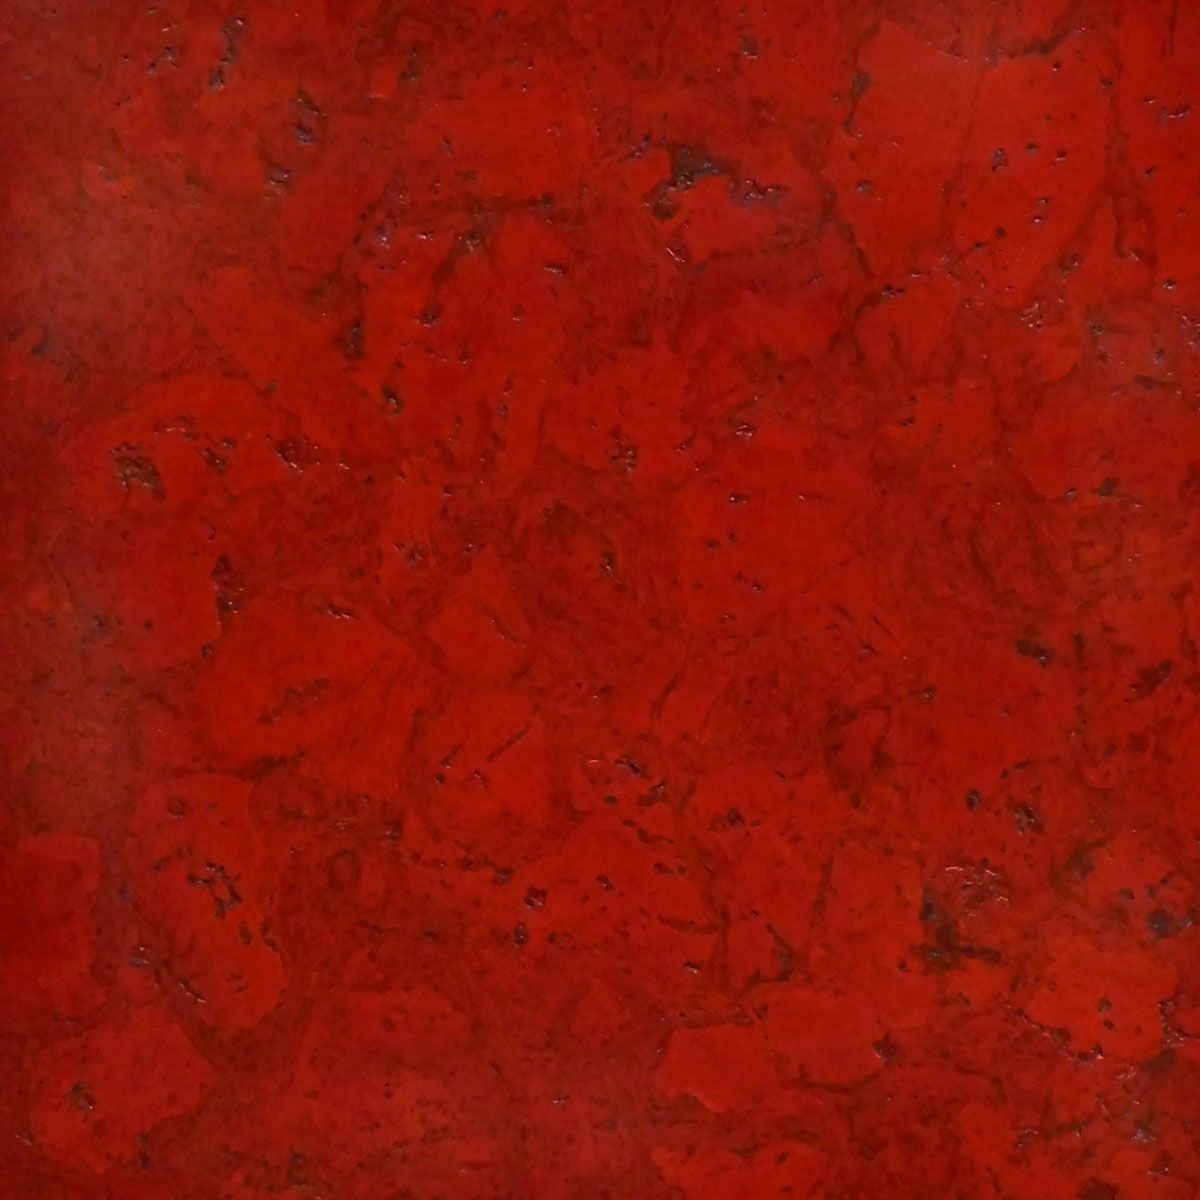 Globus cork burnt orange nugget cork tiles for floors for Sustainable cork flooring